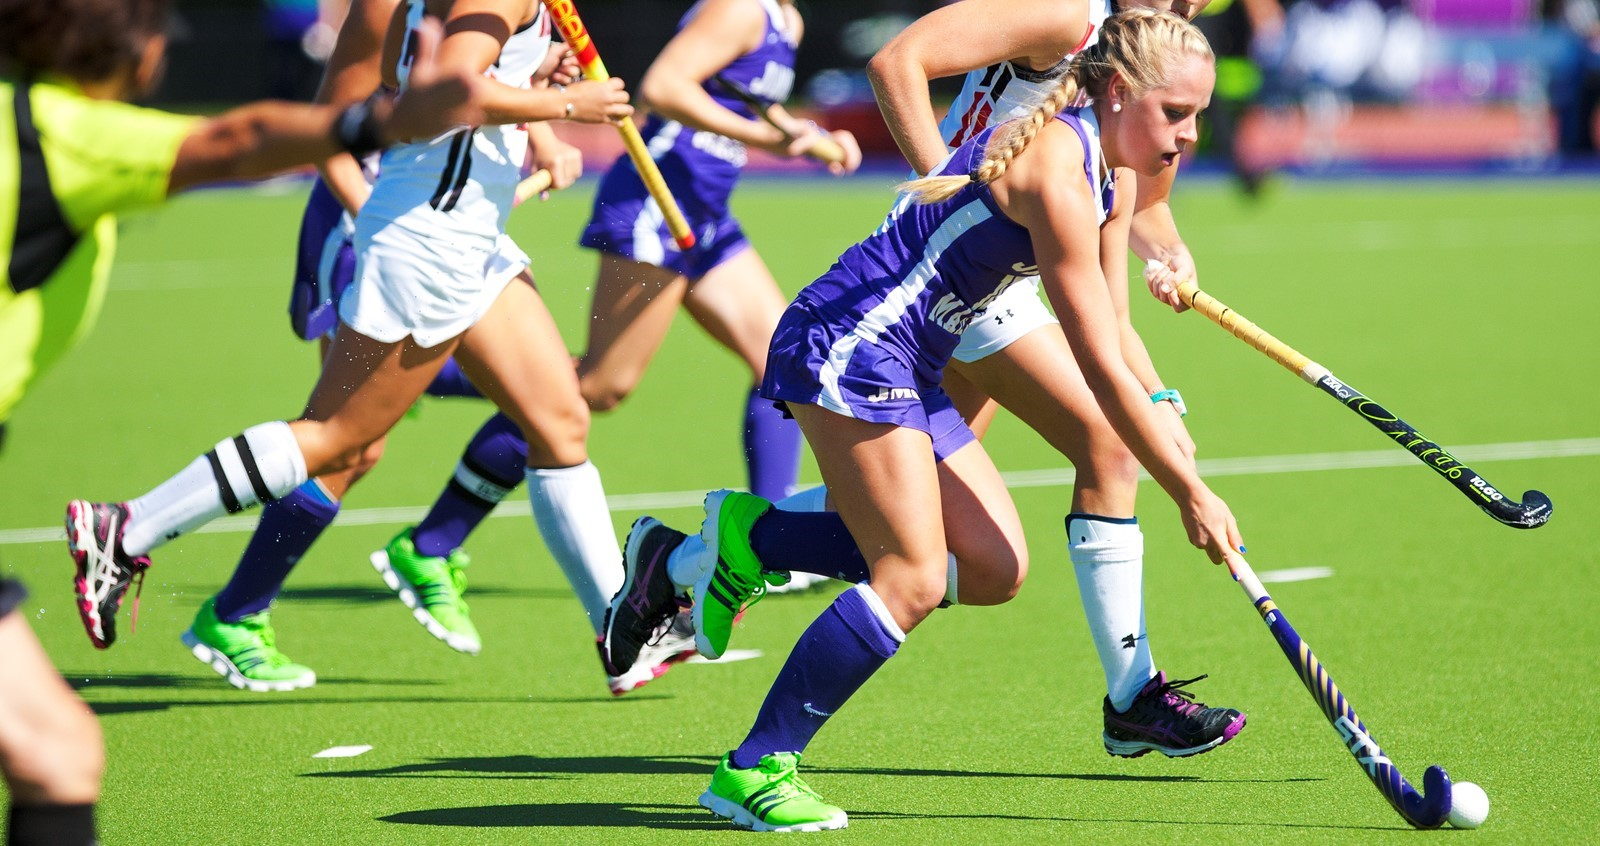 Field Hockey: Strong First Half Solidifies 3-1 Win for No. 18 JMU over Northeastern